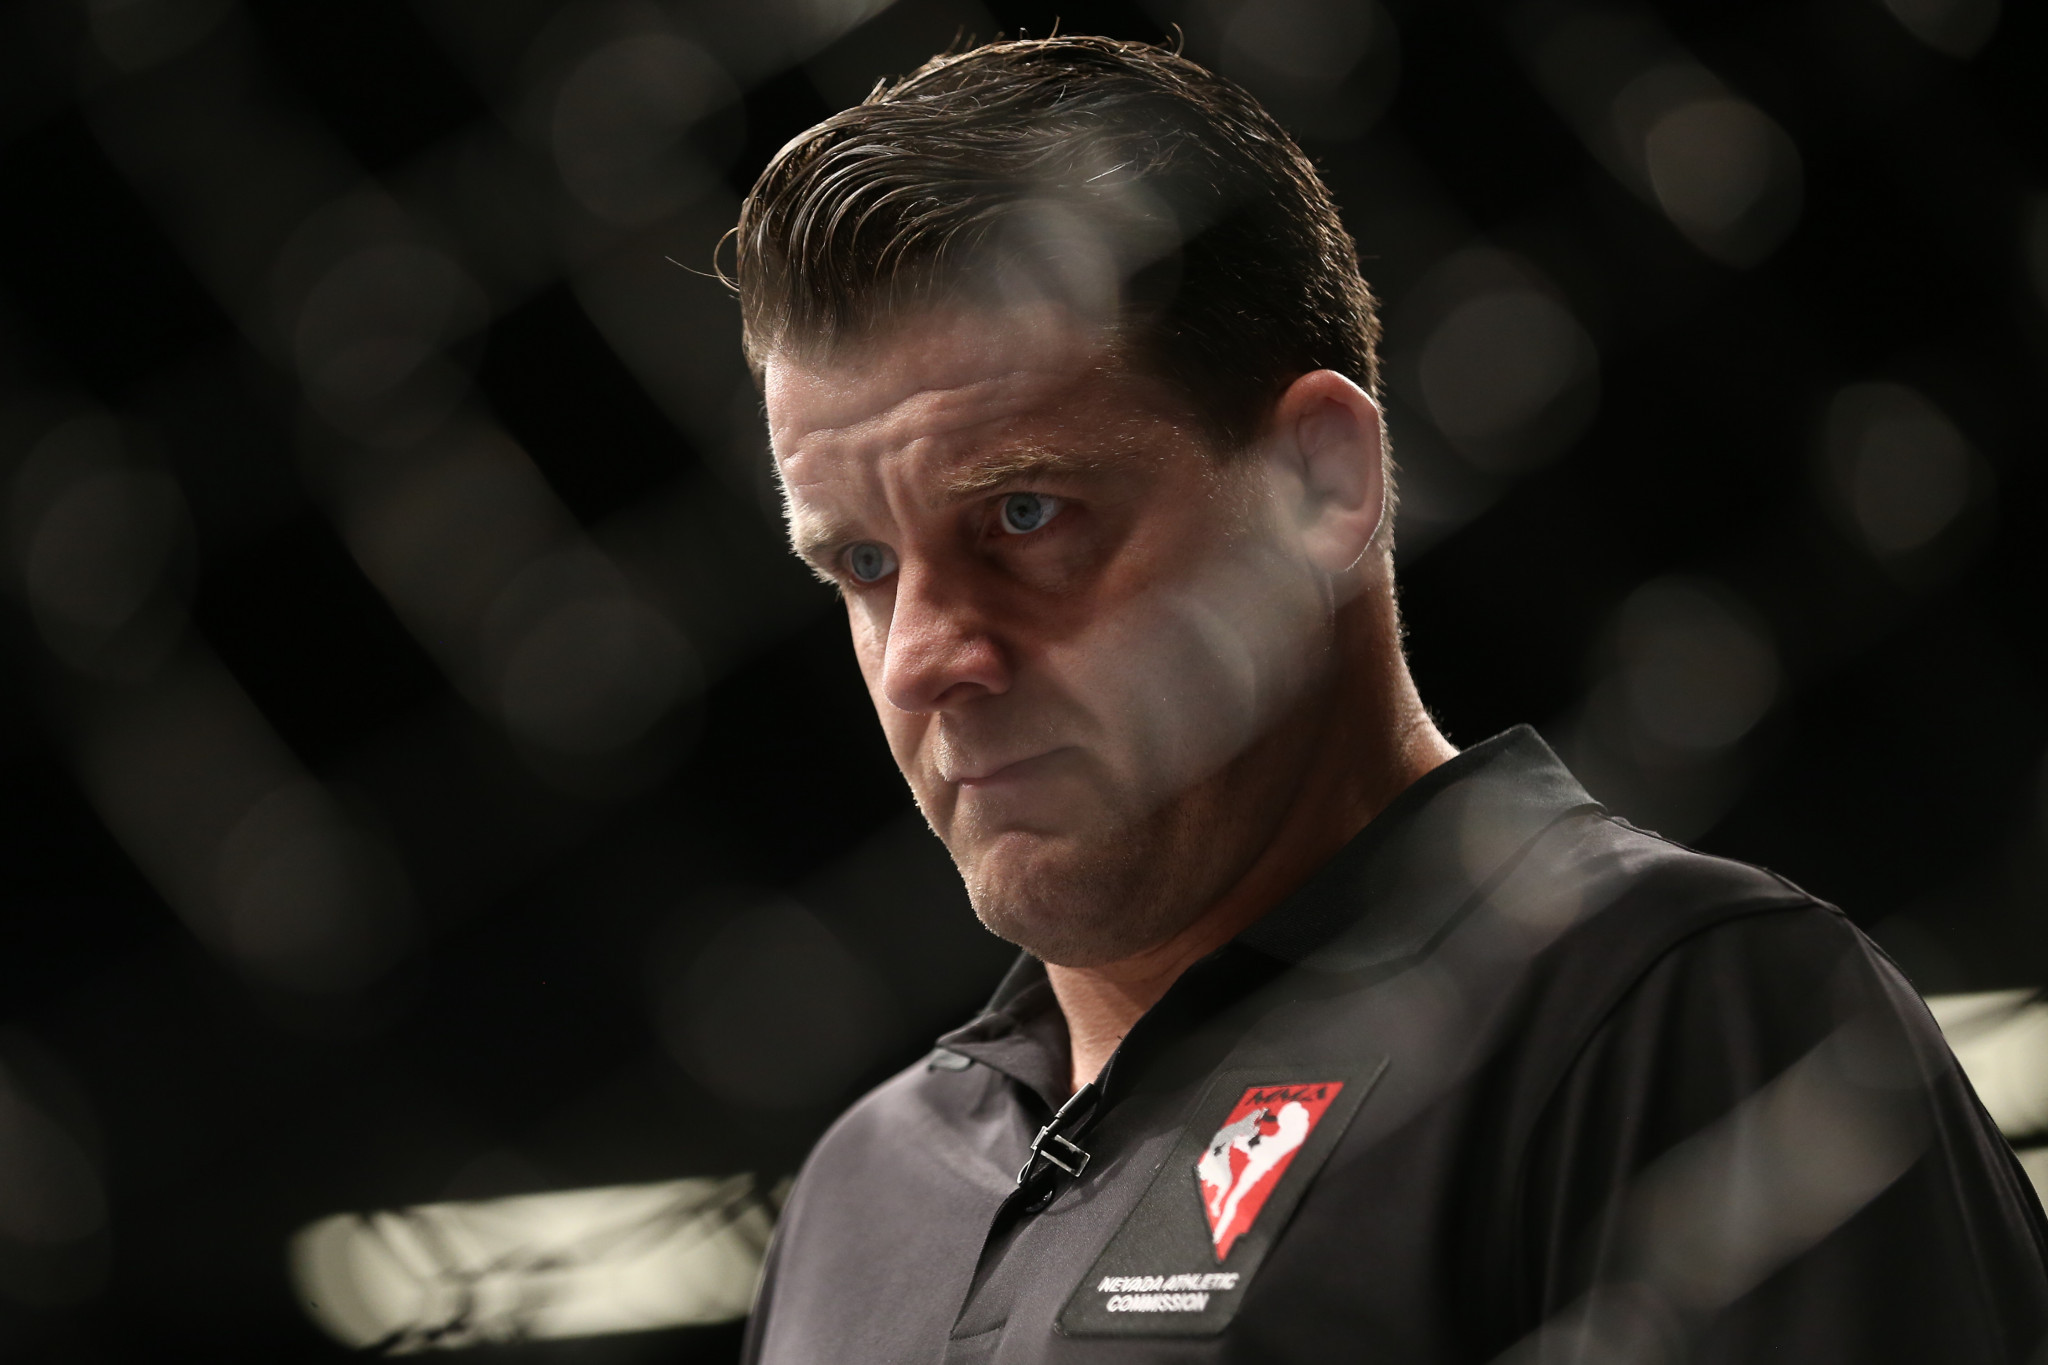 """IMMAF director predicts MMA """"ready to explode"""" in France after hosting officiating course"""